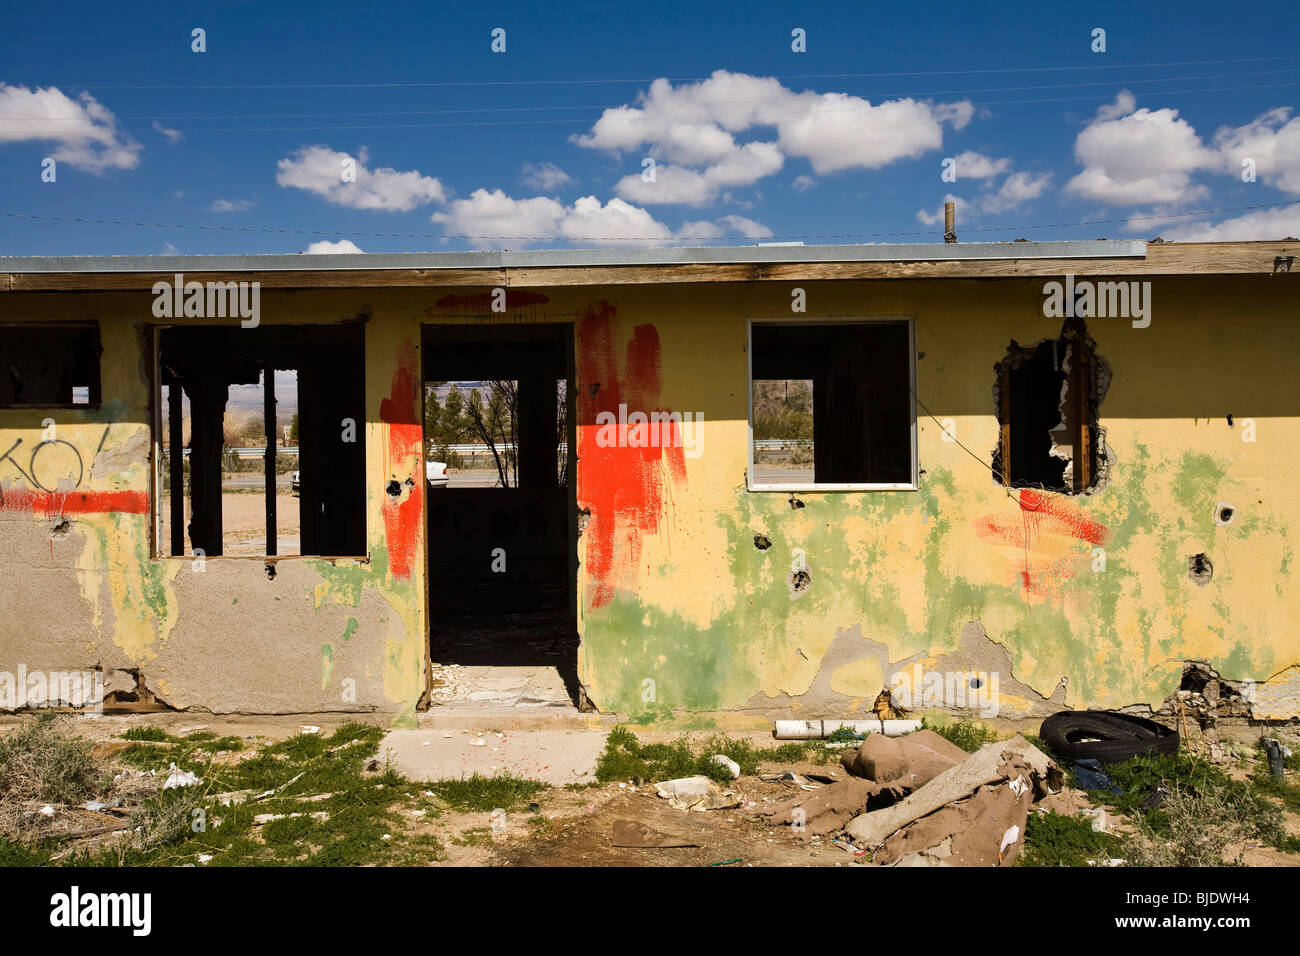 Abandoned Shack, Yermo, California, United States of America - Stock Image